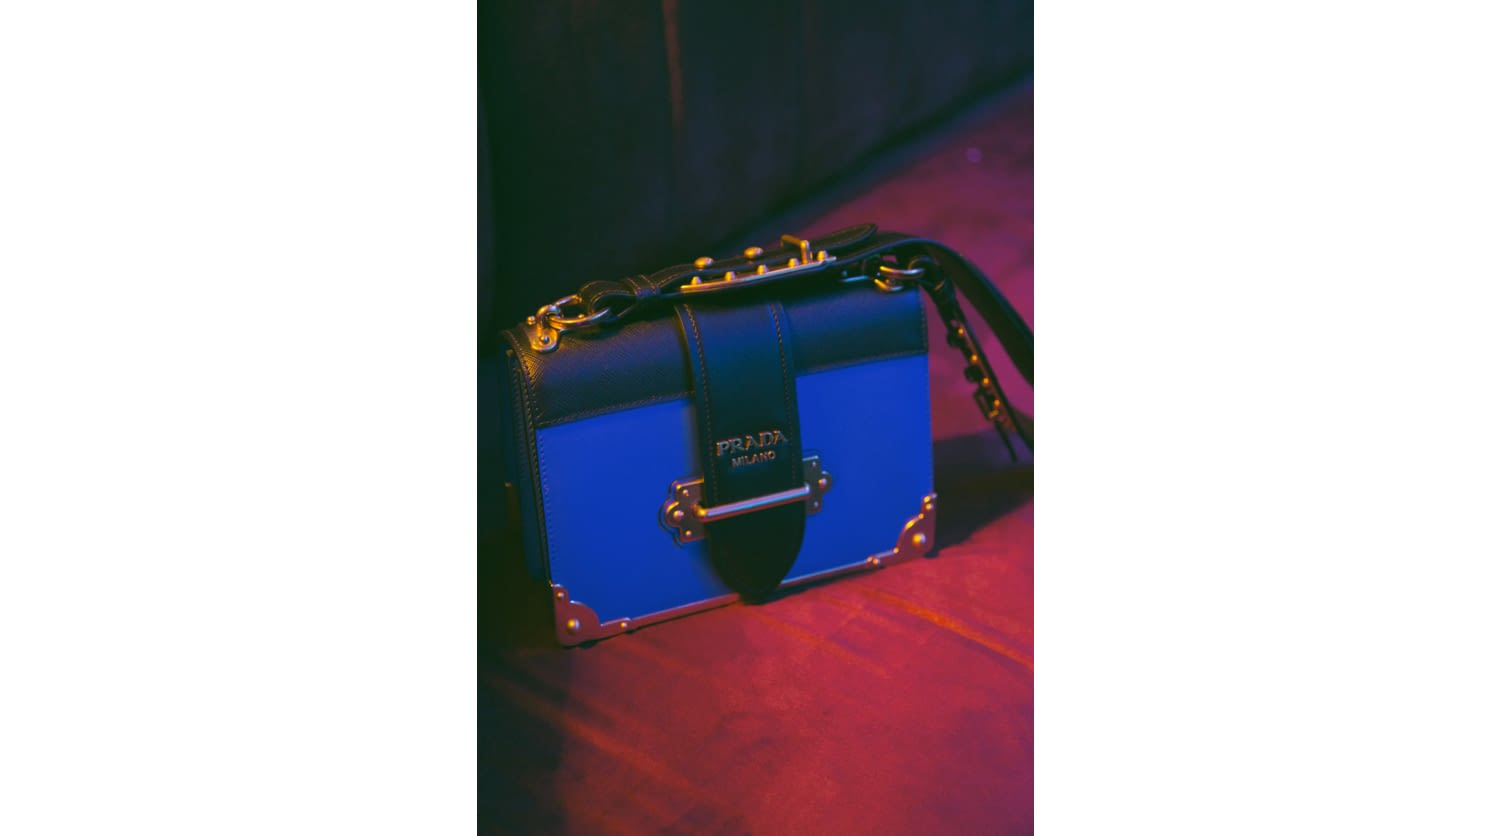 4 Prada_The Delivery Man_Episode1_Prada Cahier Bag.jpg